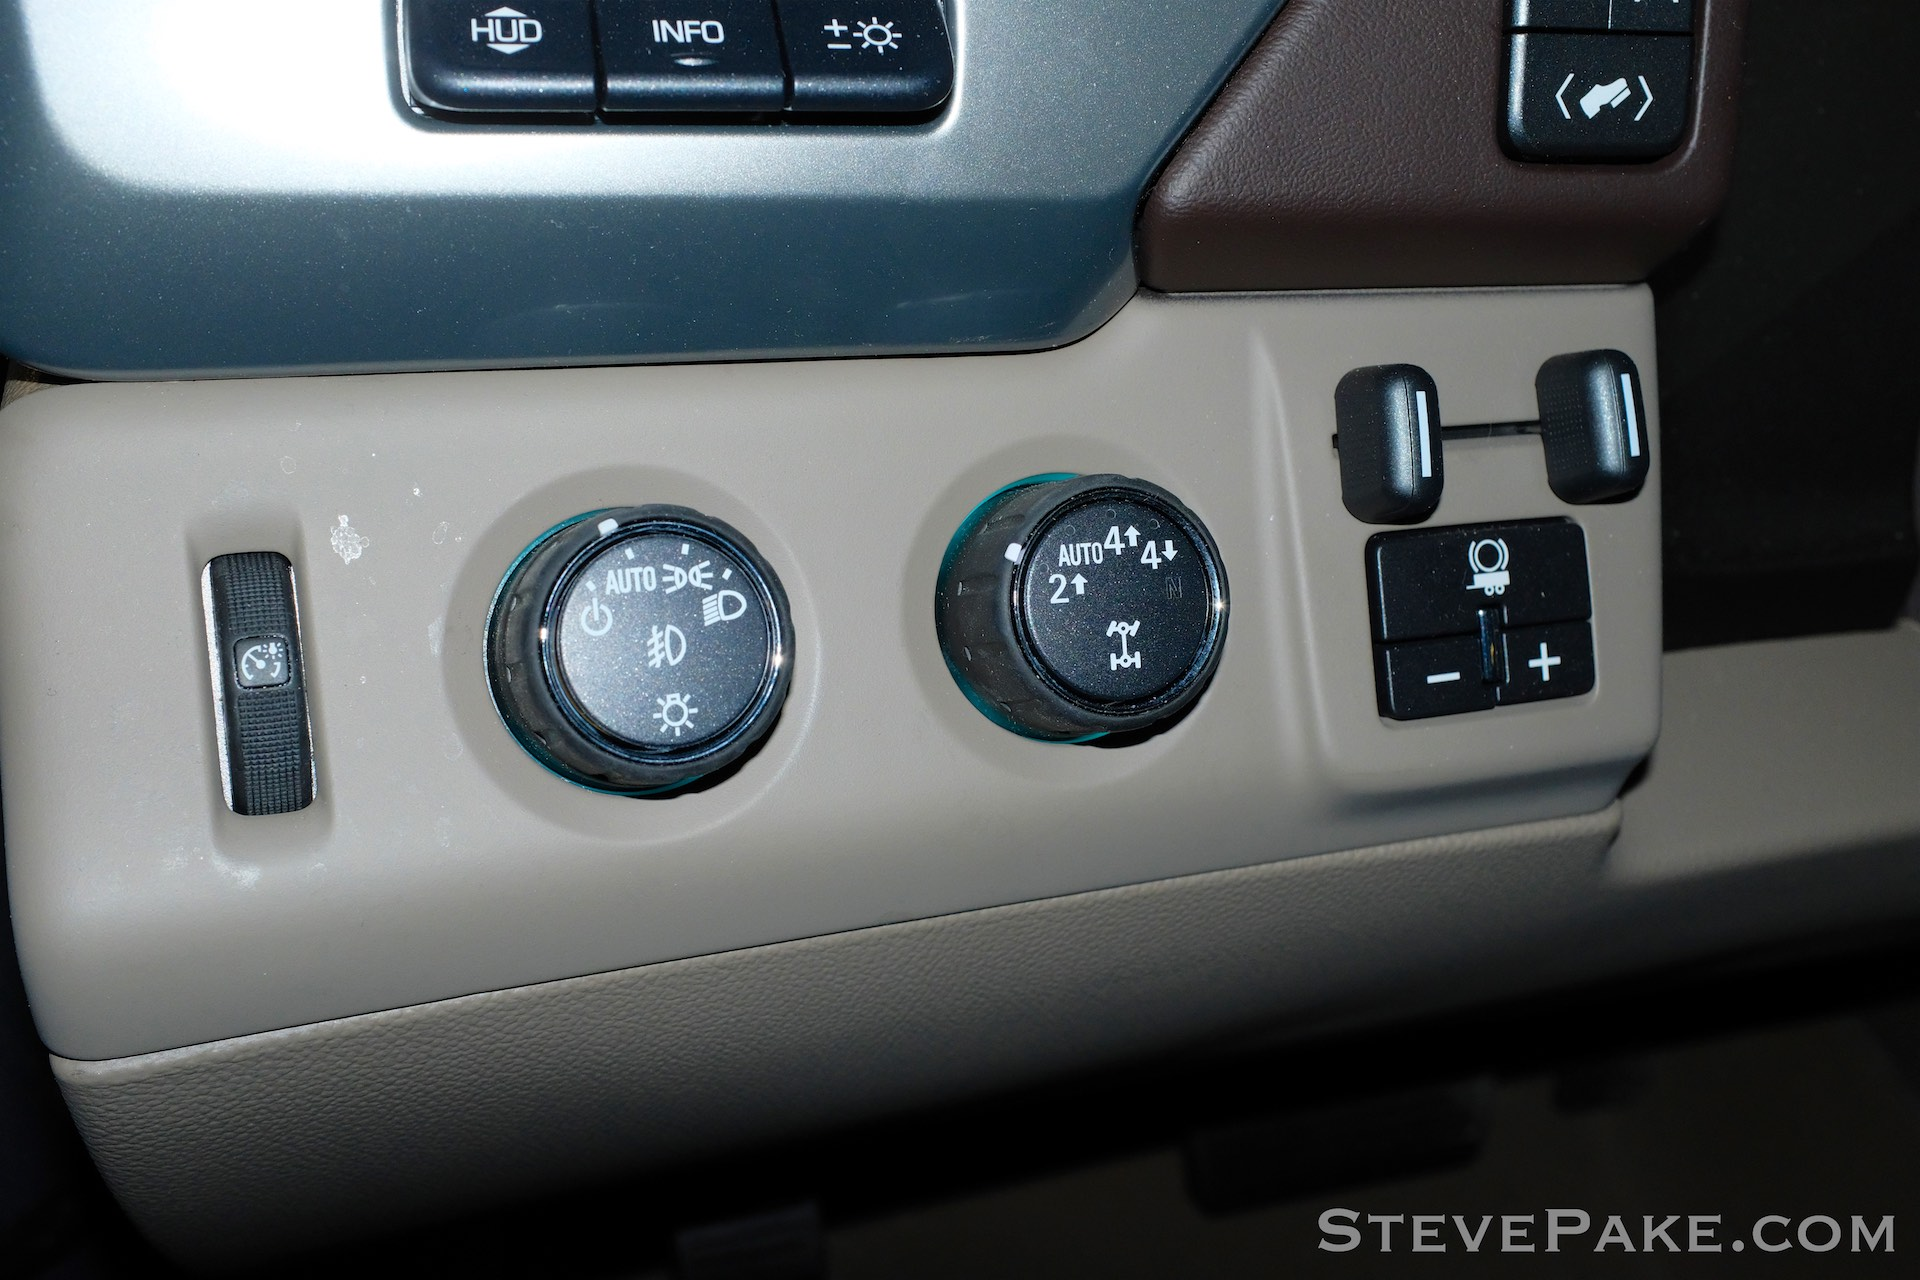 The easiest way to tell if a 2015-2019 Suburban or Tahoe has the 3.42 gearing is to look for the optional Max Trailering Package equipment, which includes the trailer brake controller and an option for 4 LO on the transfer case control, to the left of the steering wheel and next to the light switch.